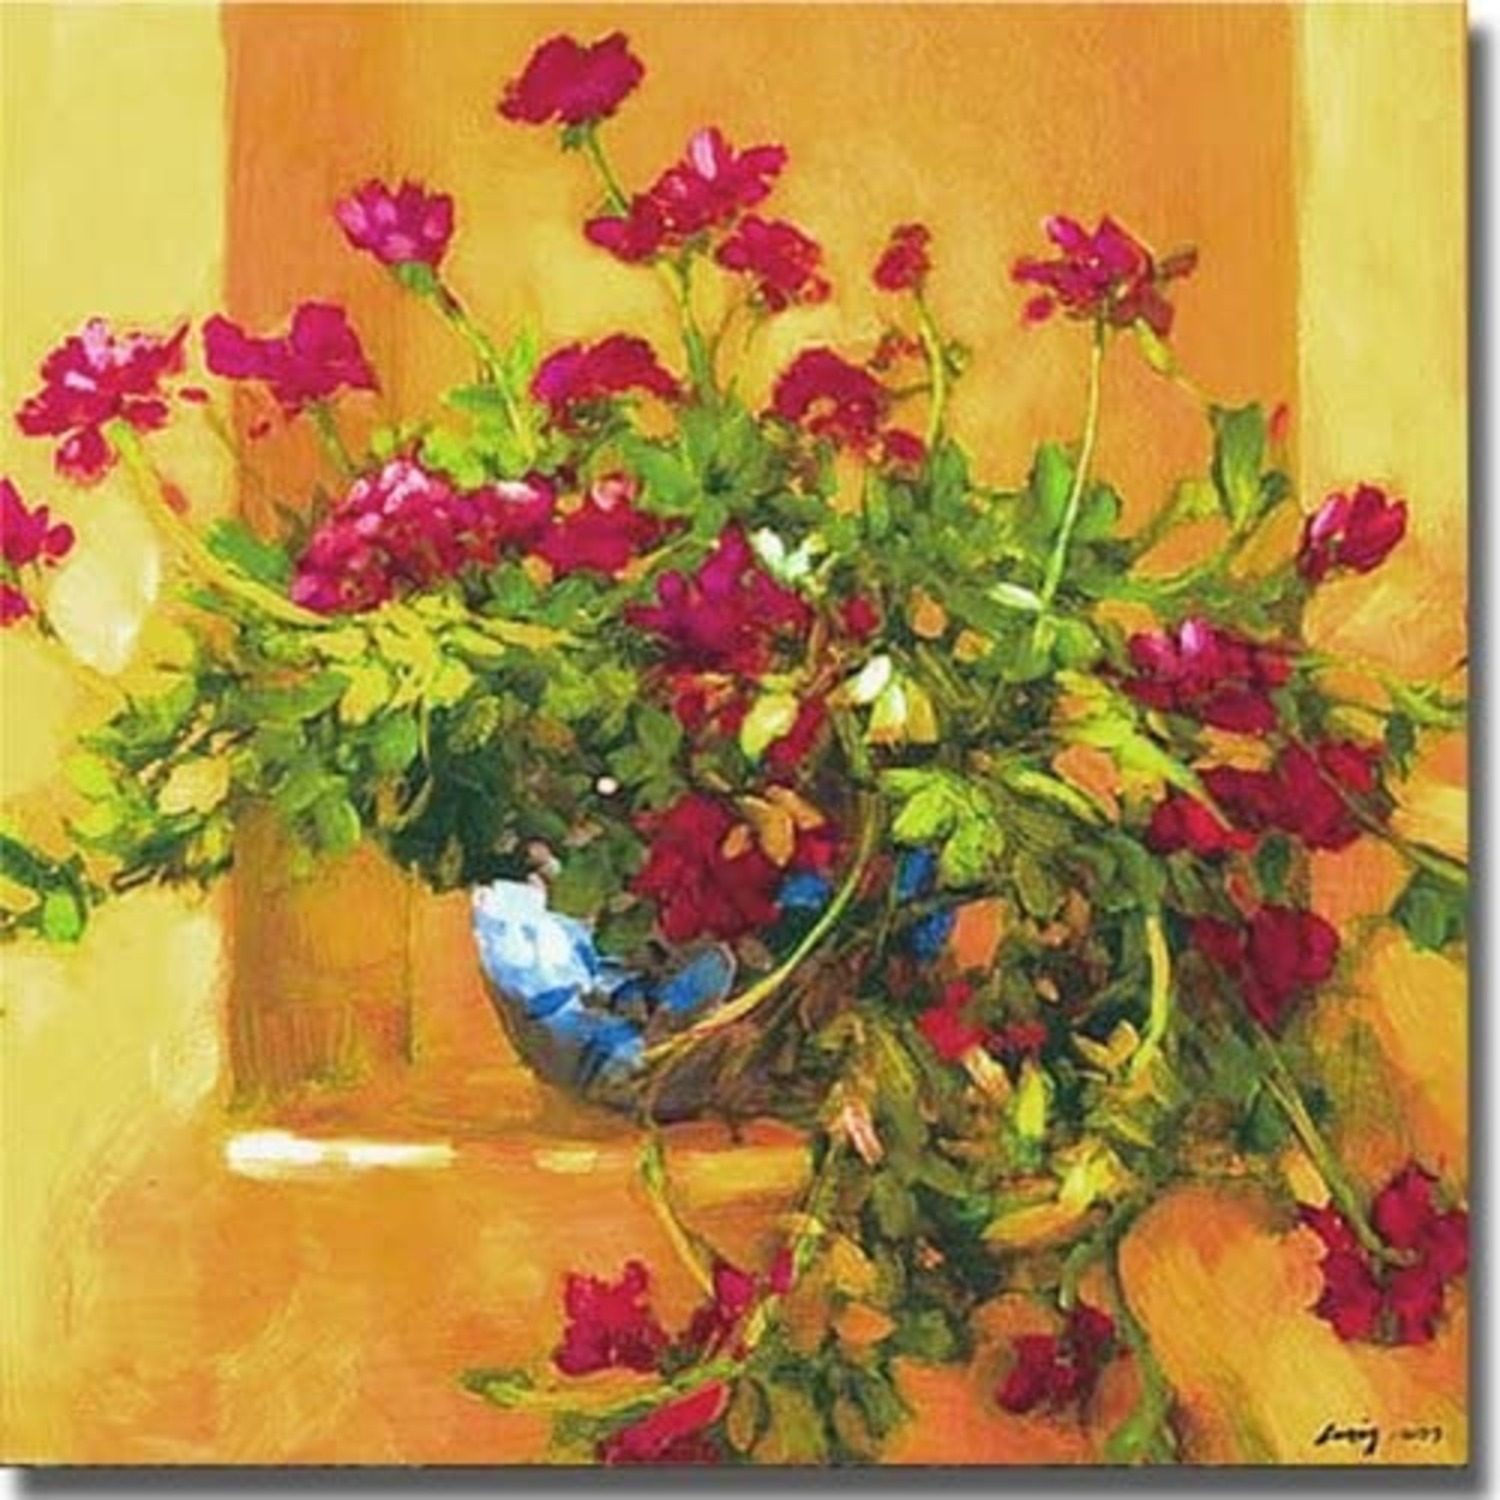 Crate & Barrel Ivy Geraniums by Philip Craig - image-3